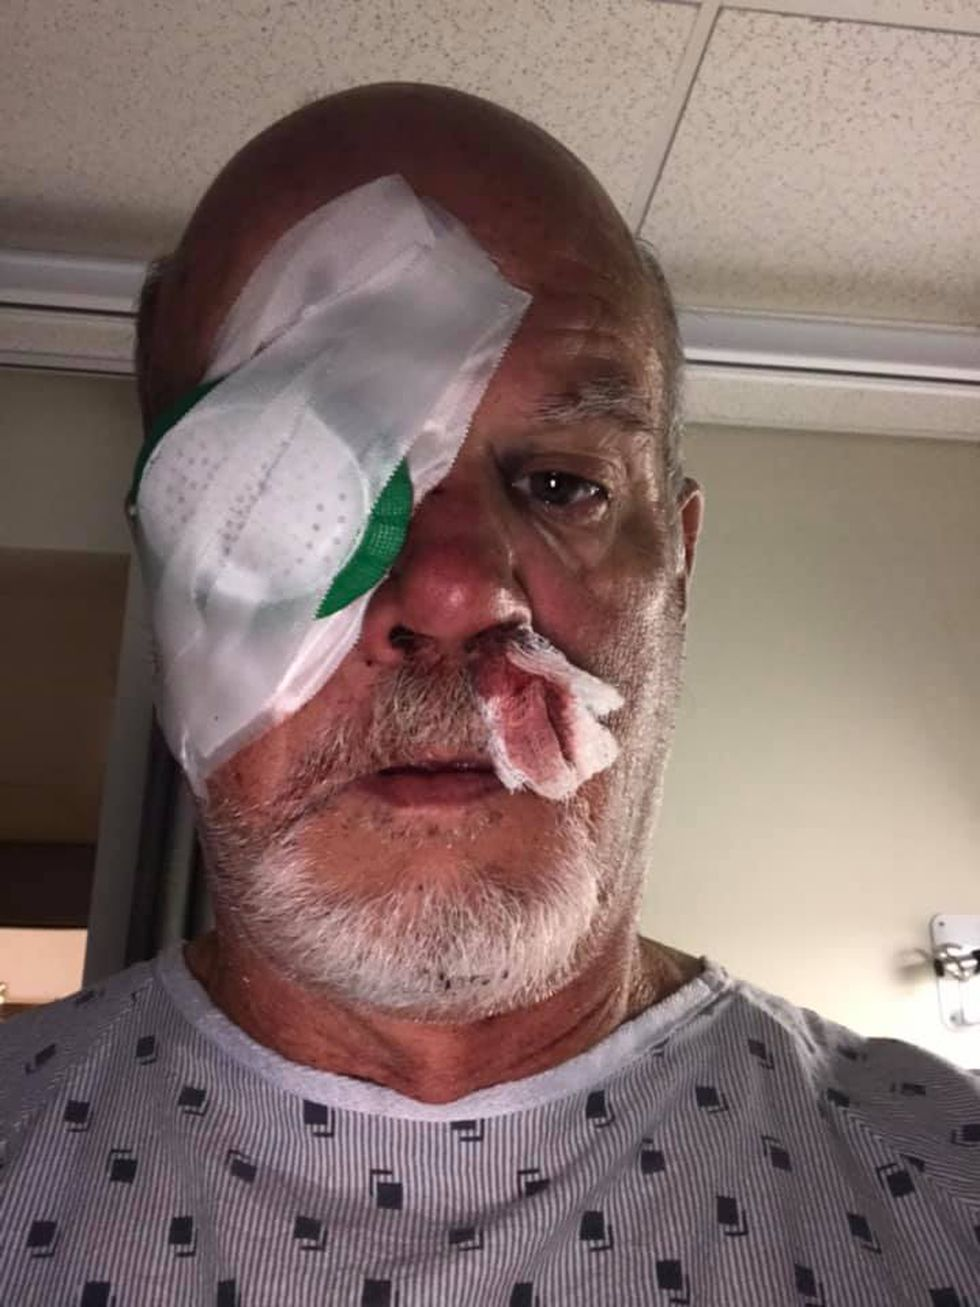 Ray Pulsifer, head coach of the Alaska Wild, was struck by a ball at practice prior to the Matson Invitational.